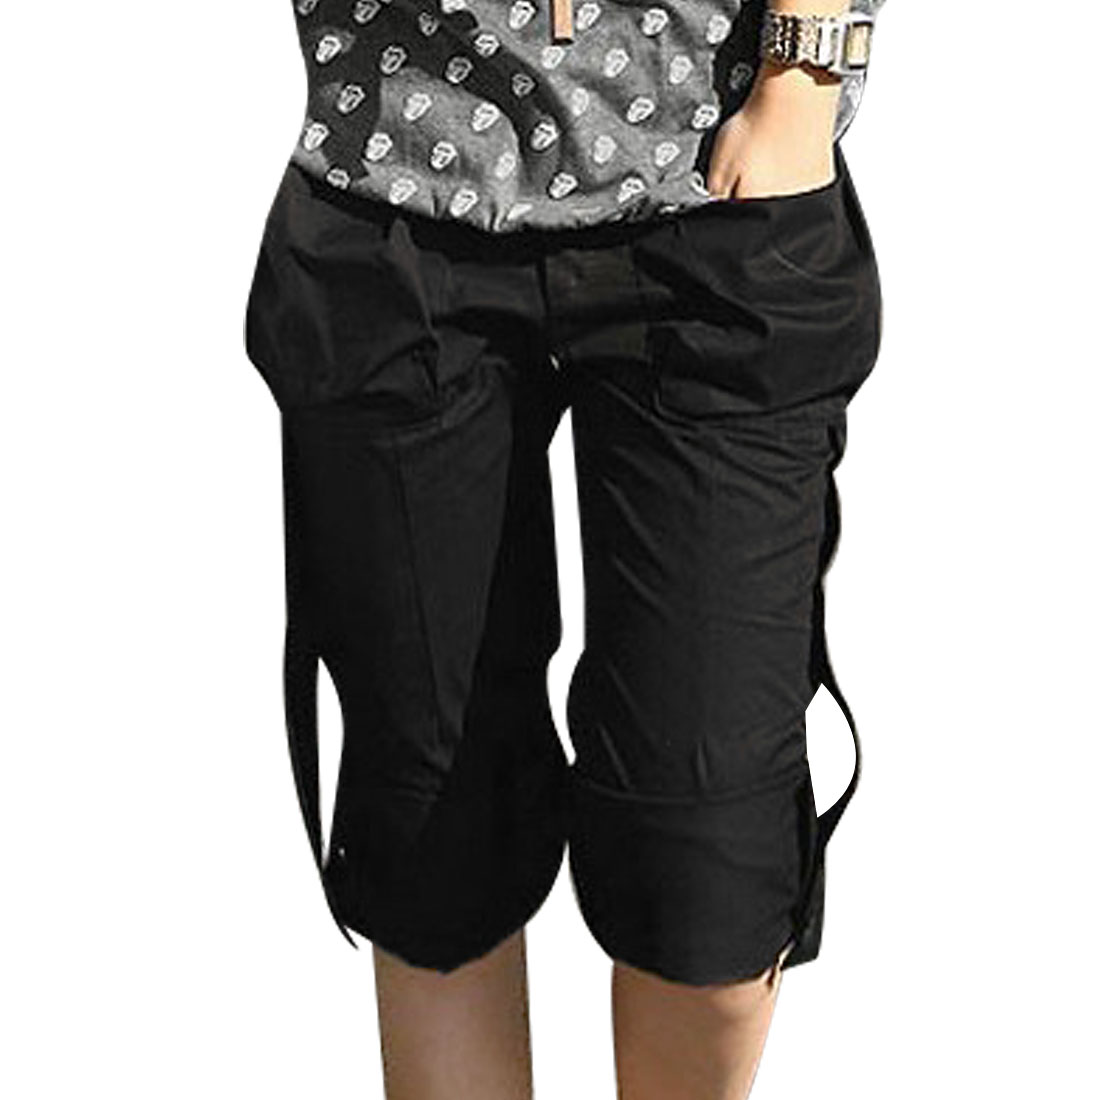 Ladies Black Two Pocket Button Decor Zip Up Casual Short Pants XS